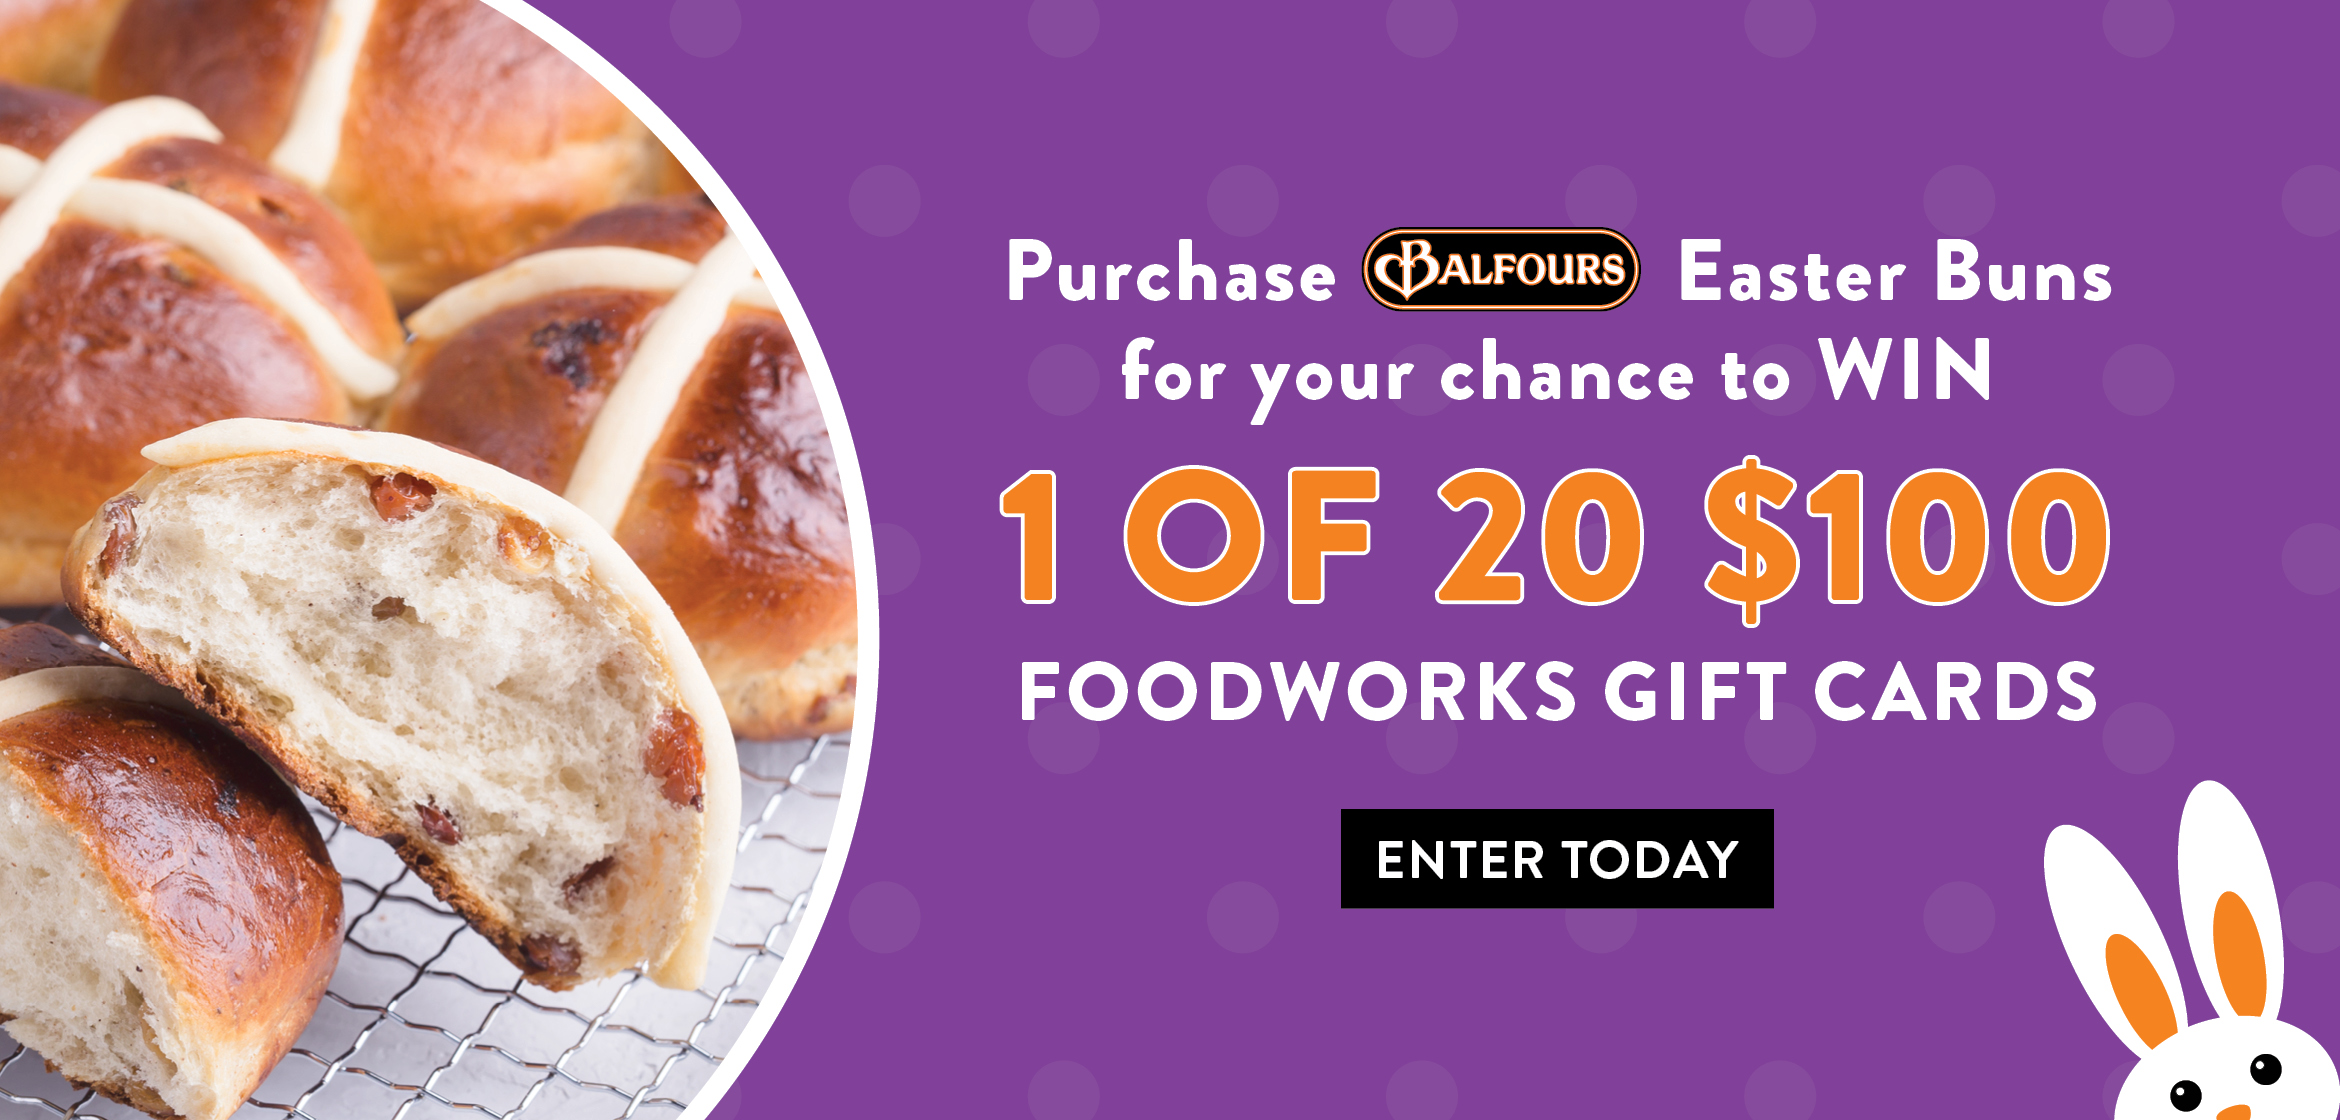 WIN 1 OF 20 $100 FOODWORKS GIFT CARDS